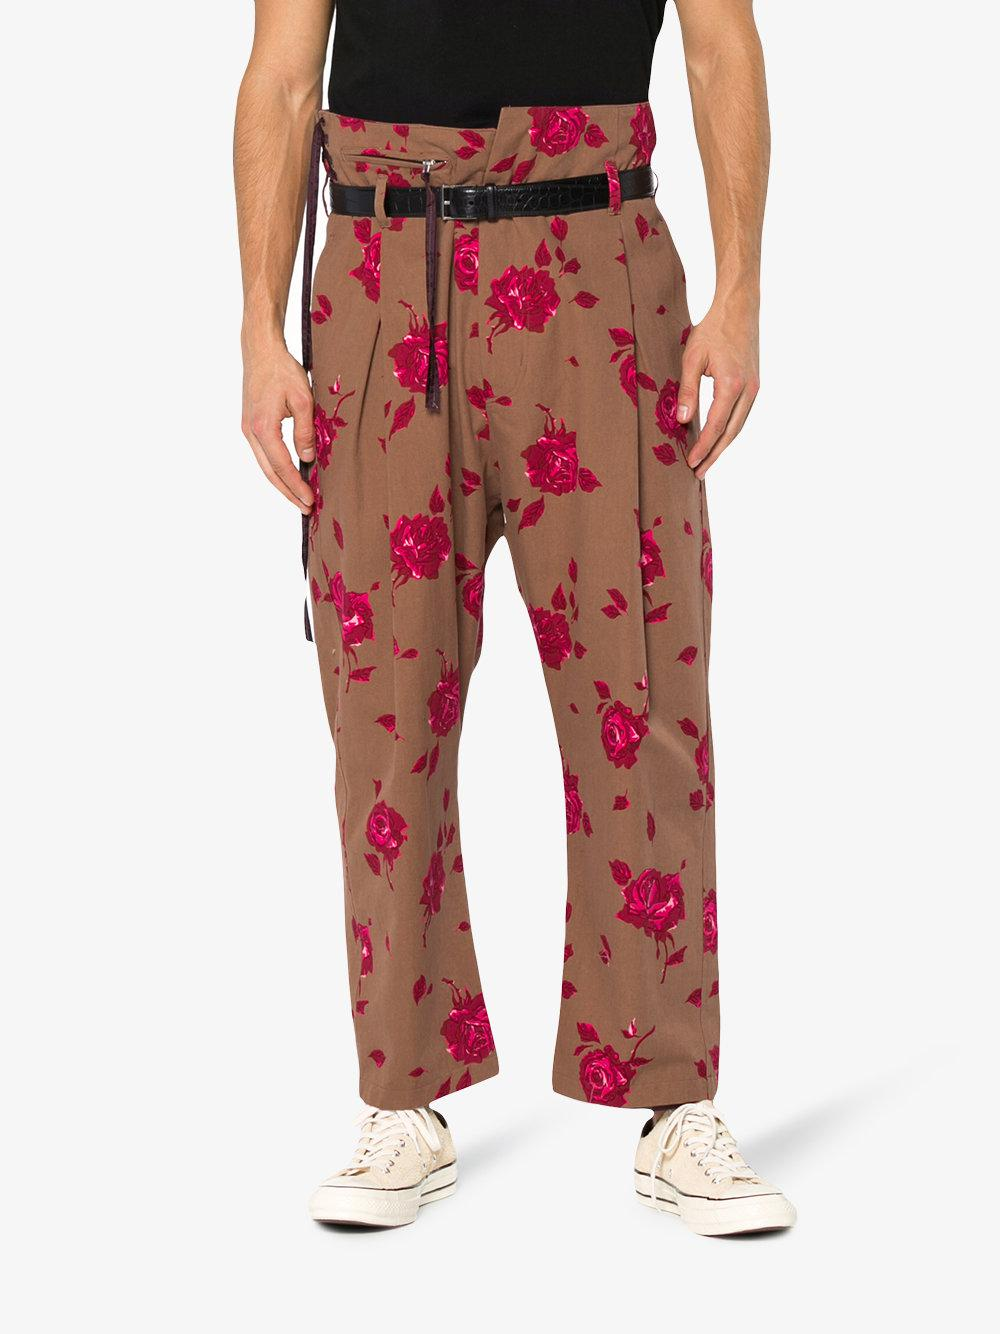 BED j.w. FORD Cotton Floral Print High Waisted Trousers in Red for Men